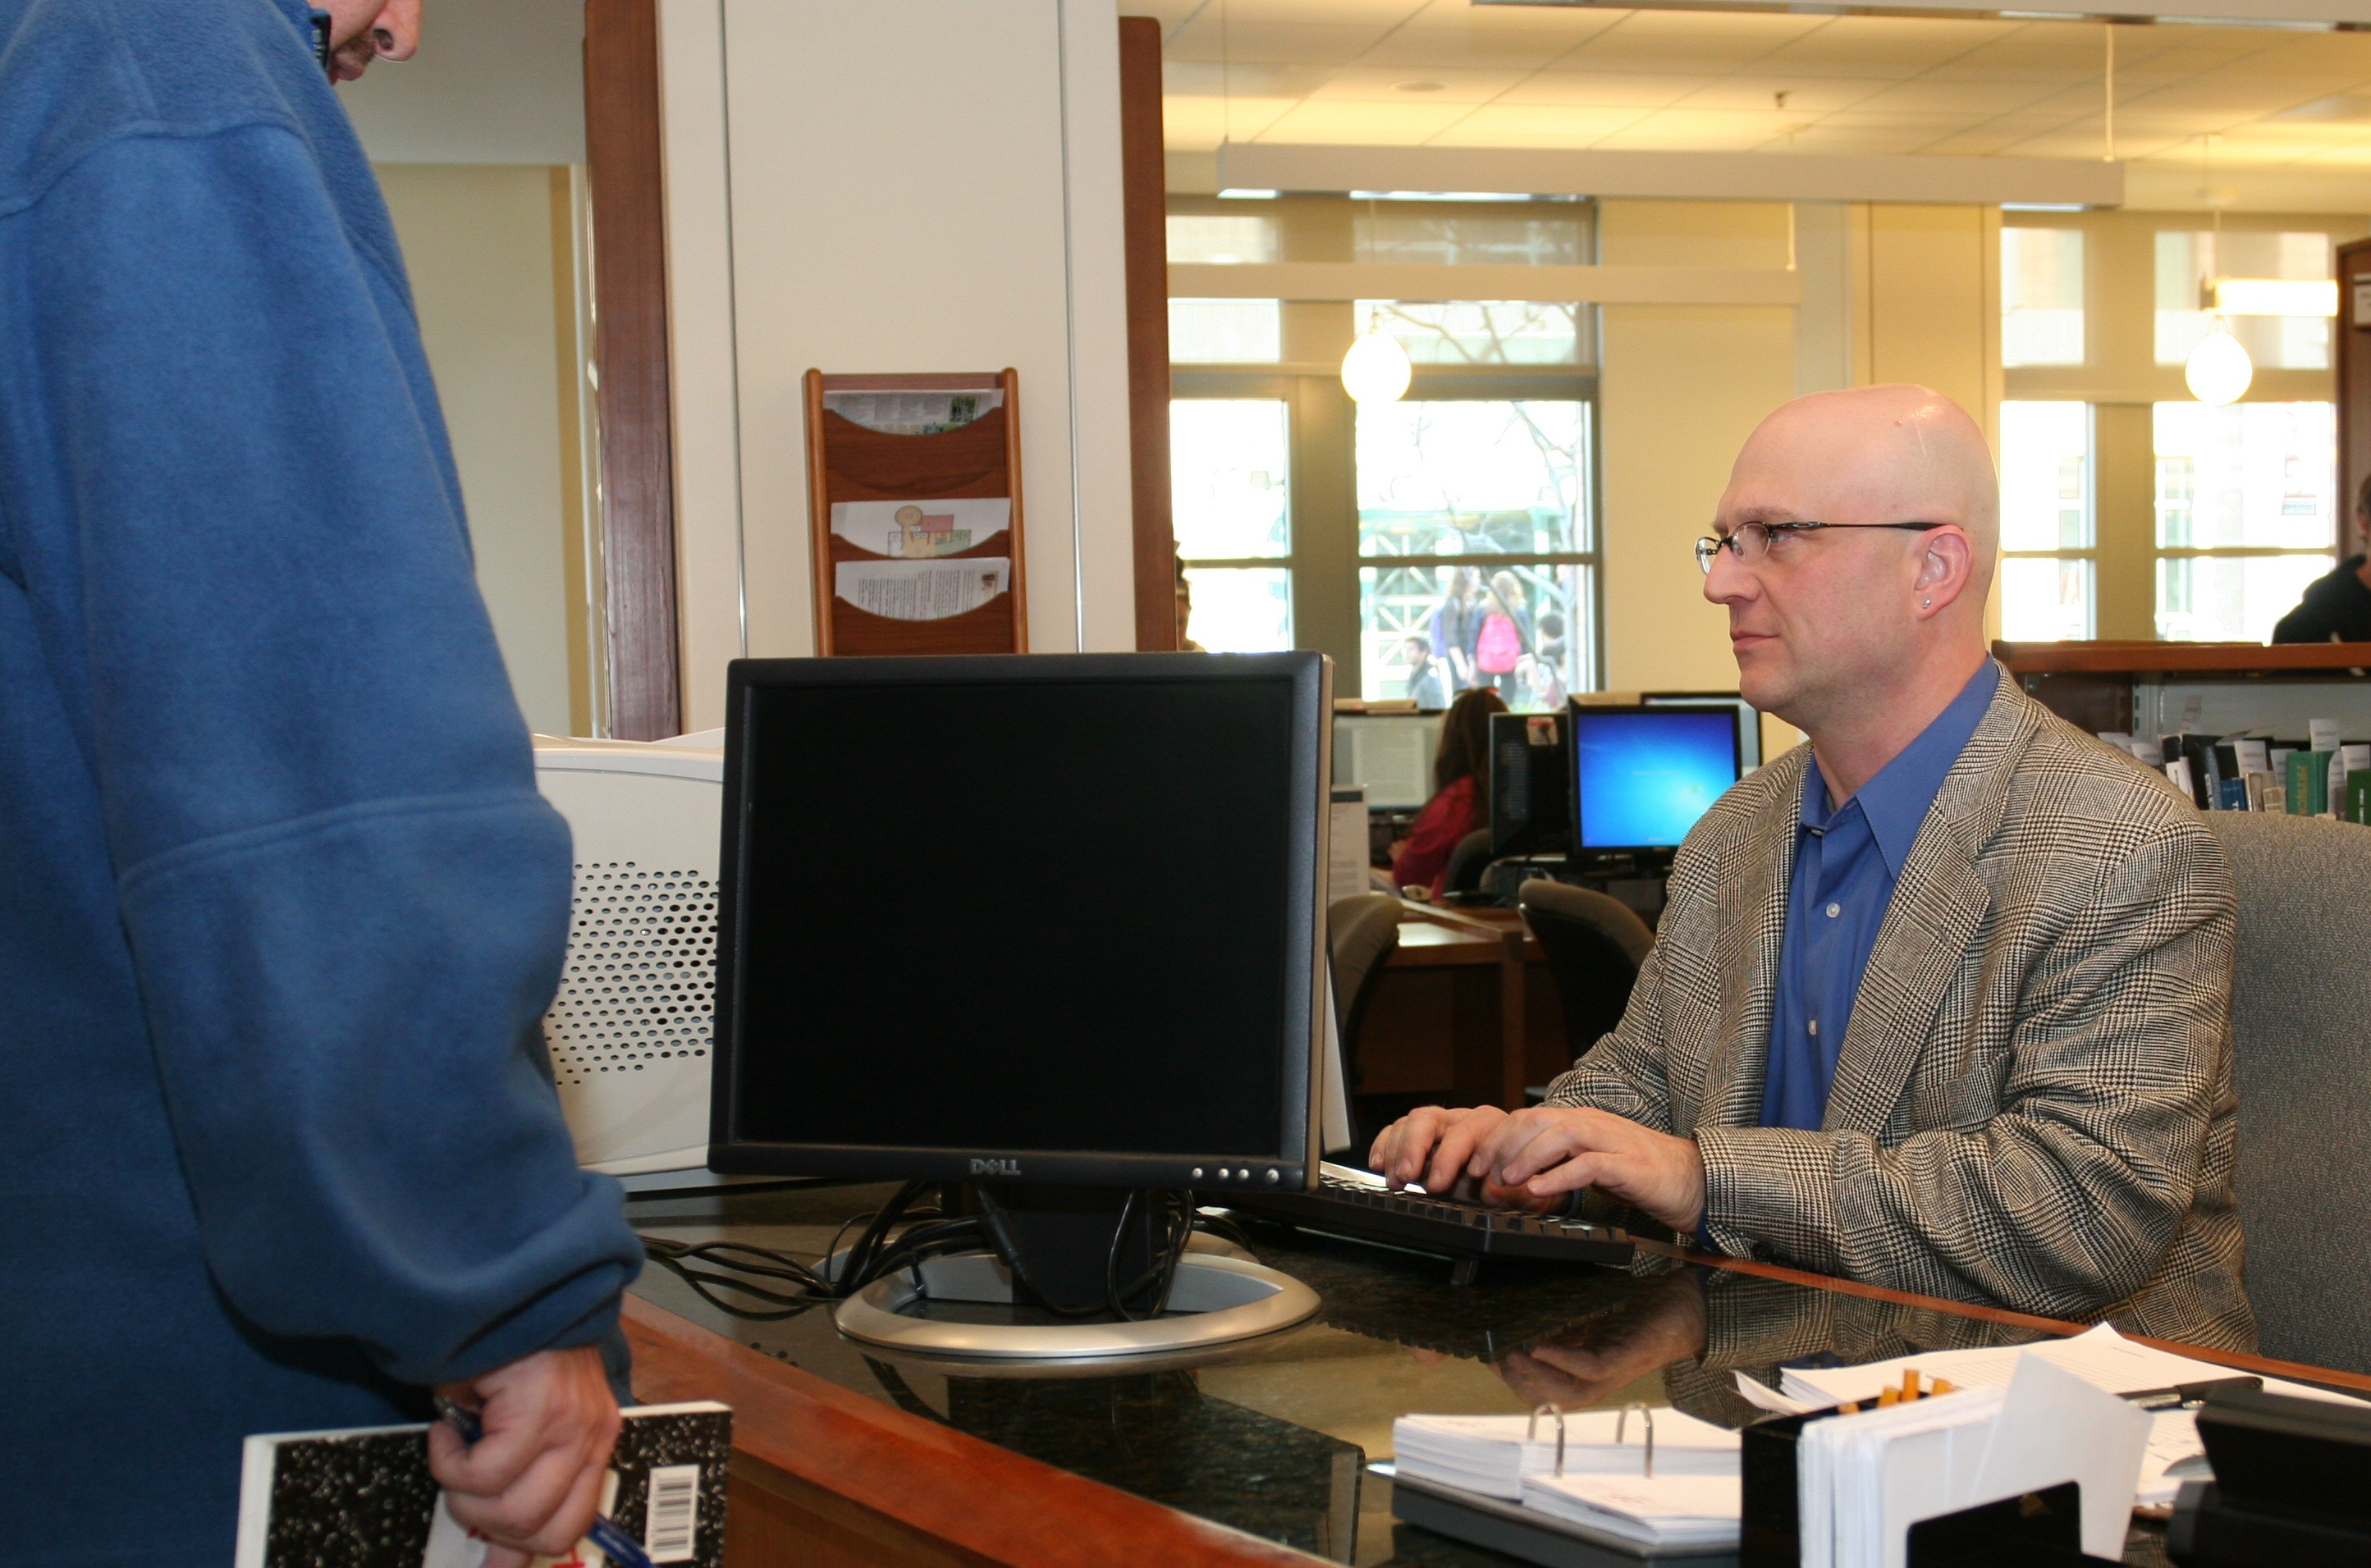 Doug Dechow, Ph.D., sciences librarian, assists a student who stopped by the reference desk for research help. (Photo/David Goto, reference librarian)